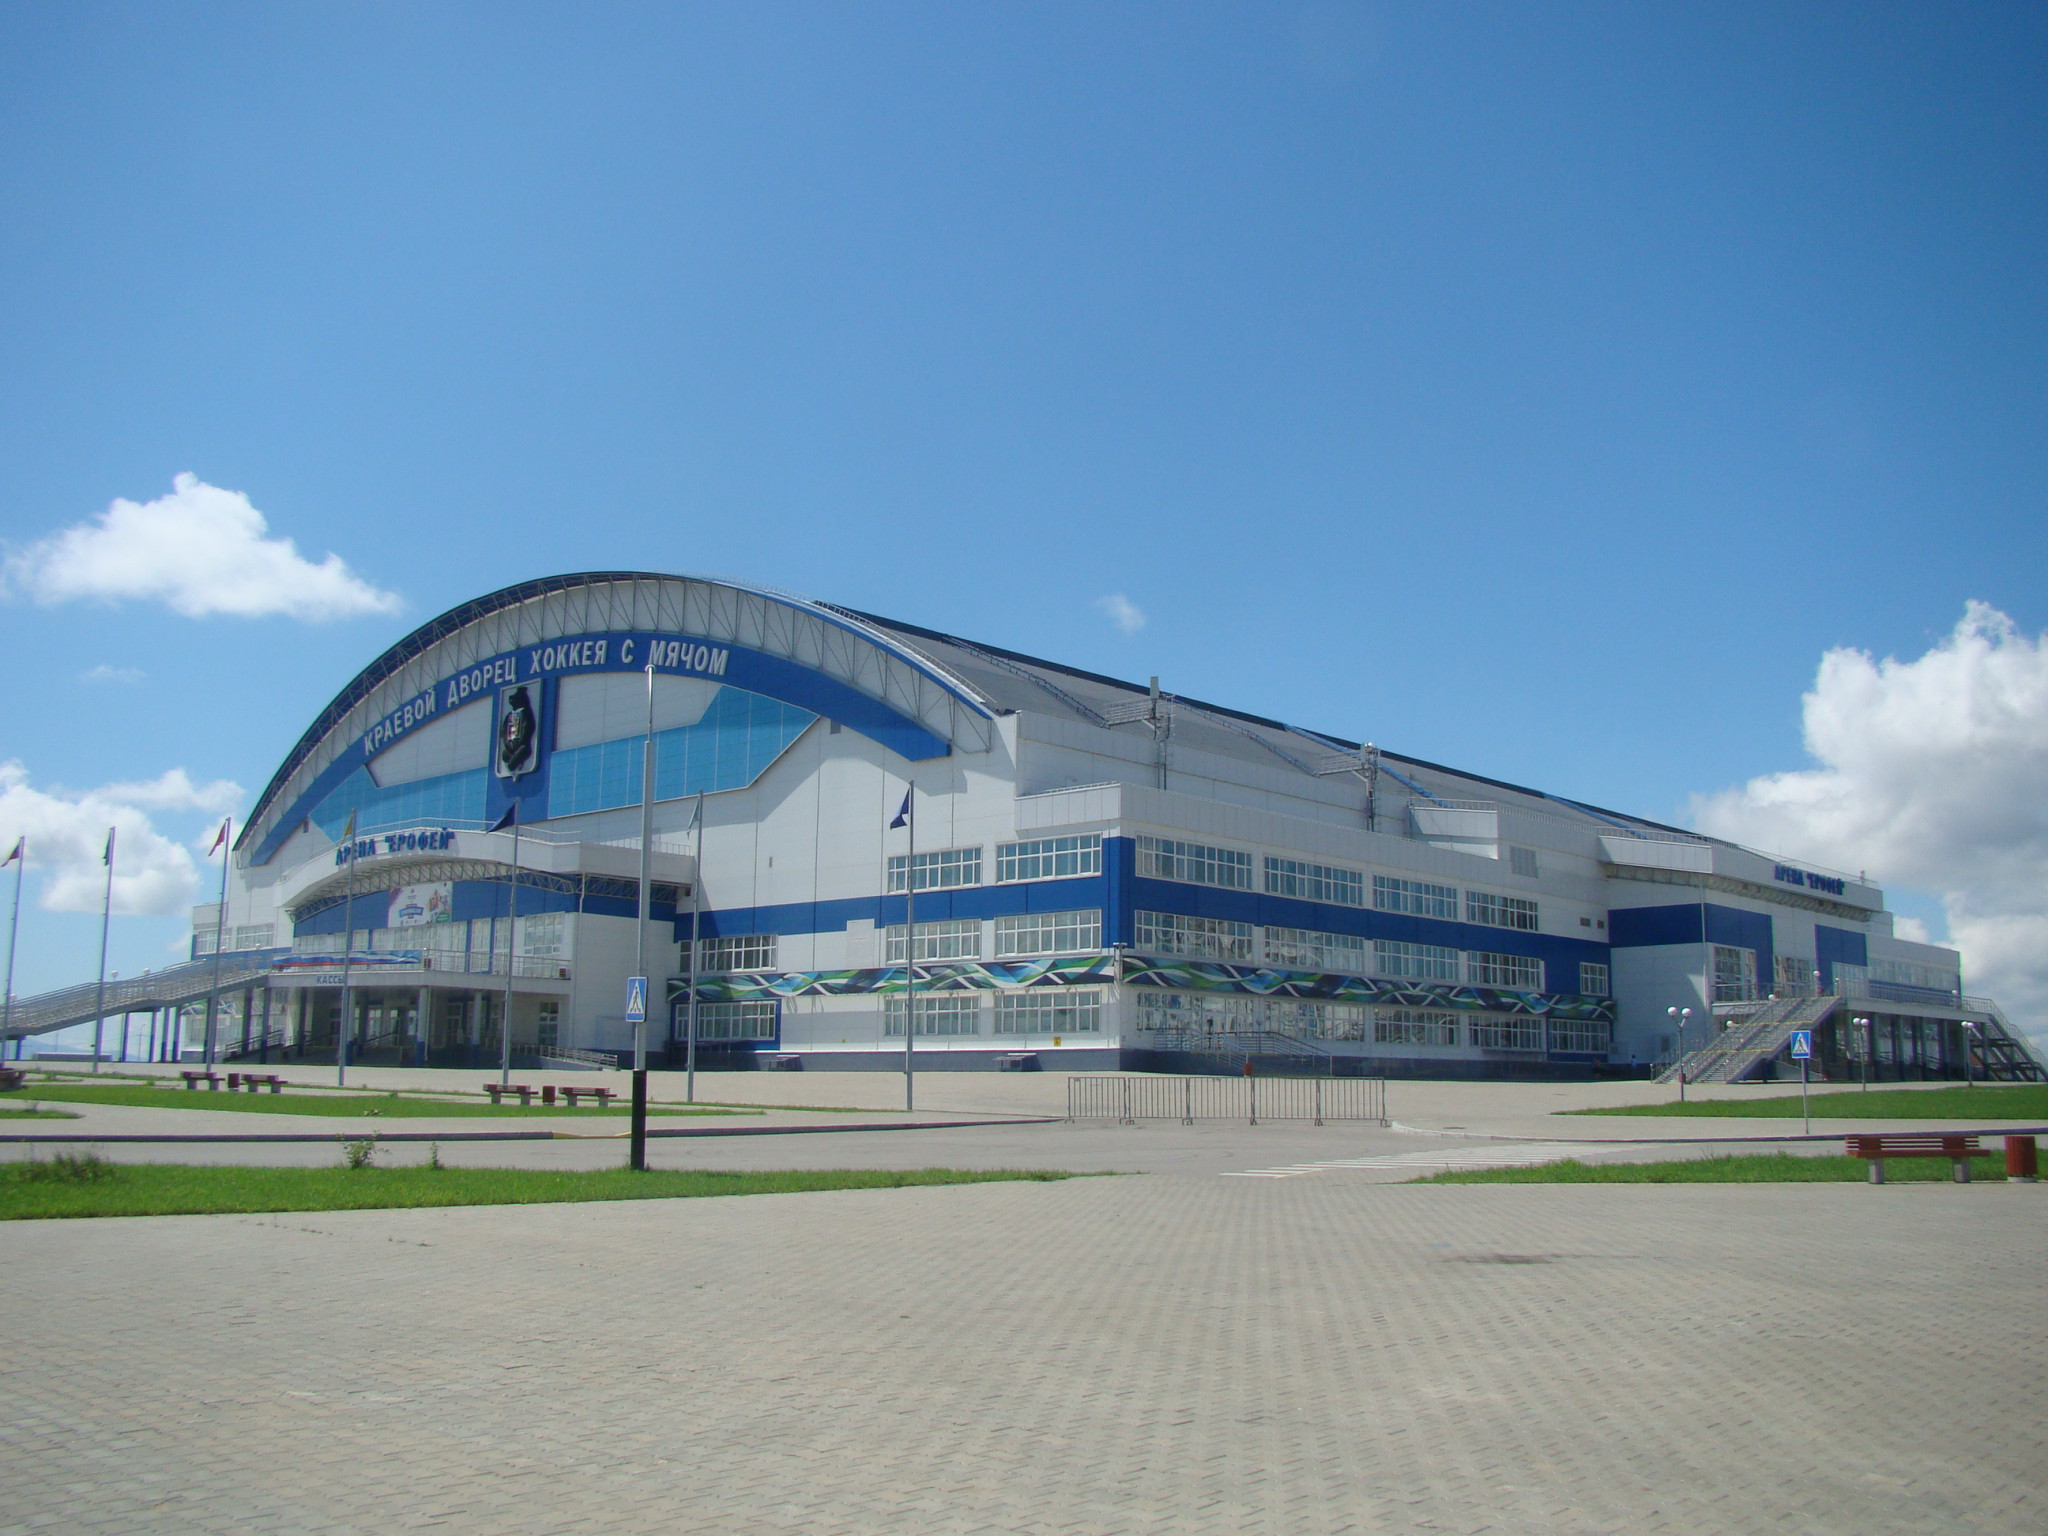 The tournament is taking place at the Arena Yerofey in Khabarovsk ©Wikimedia